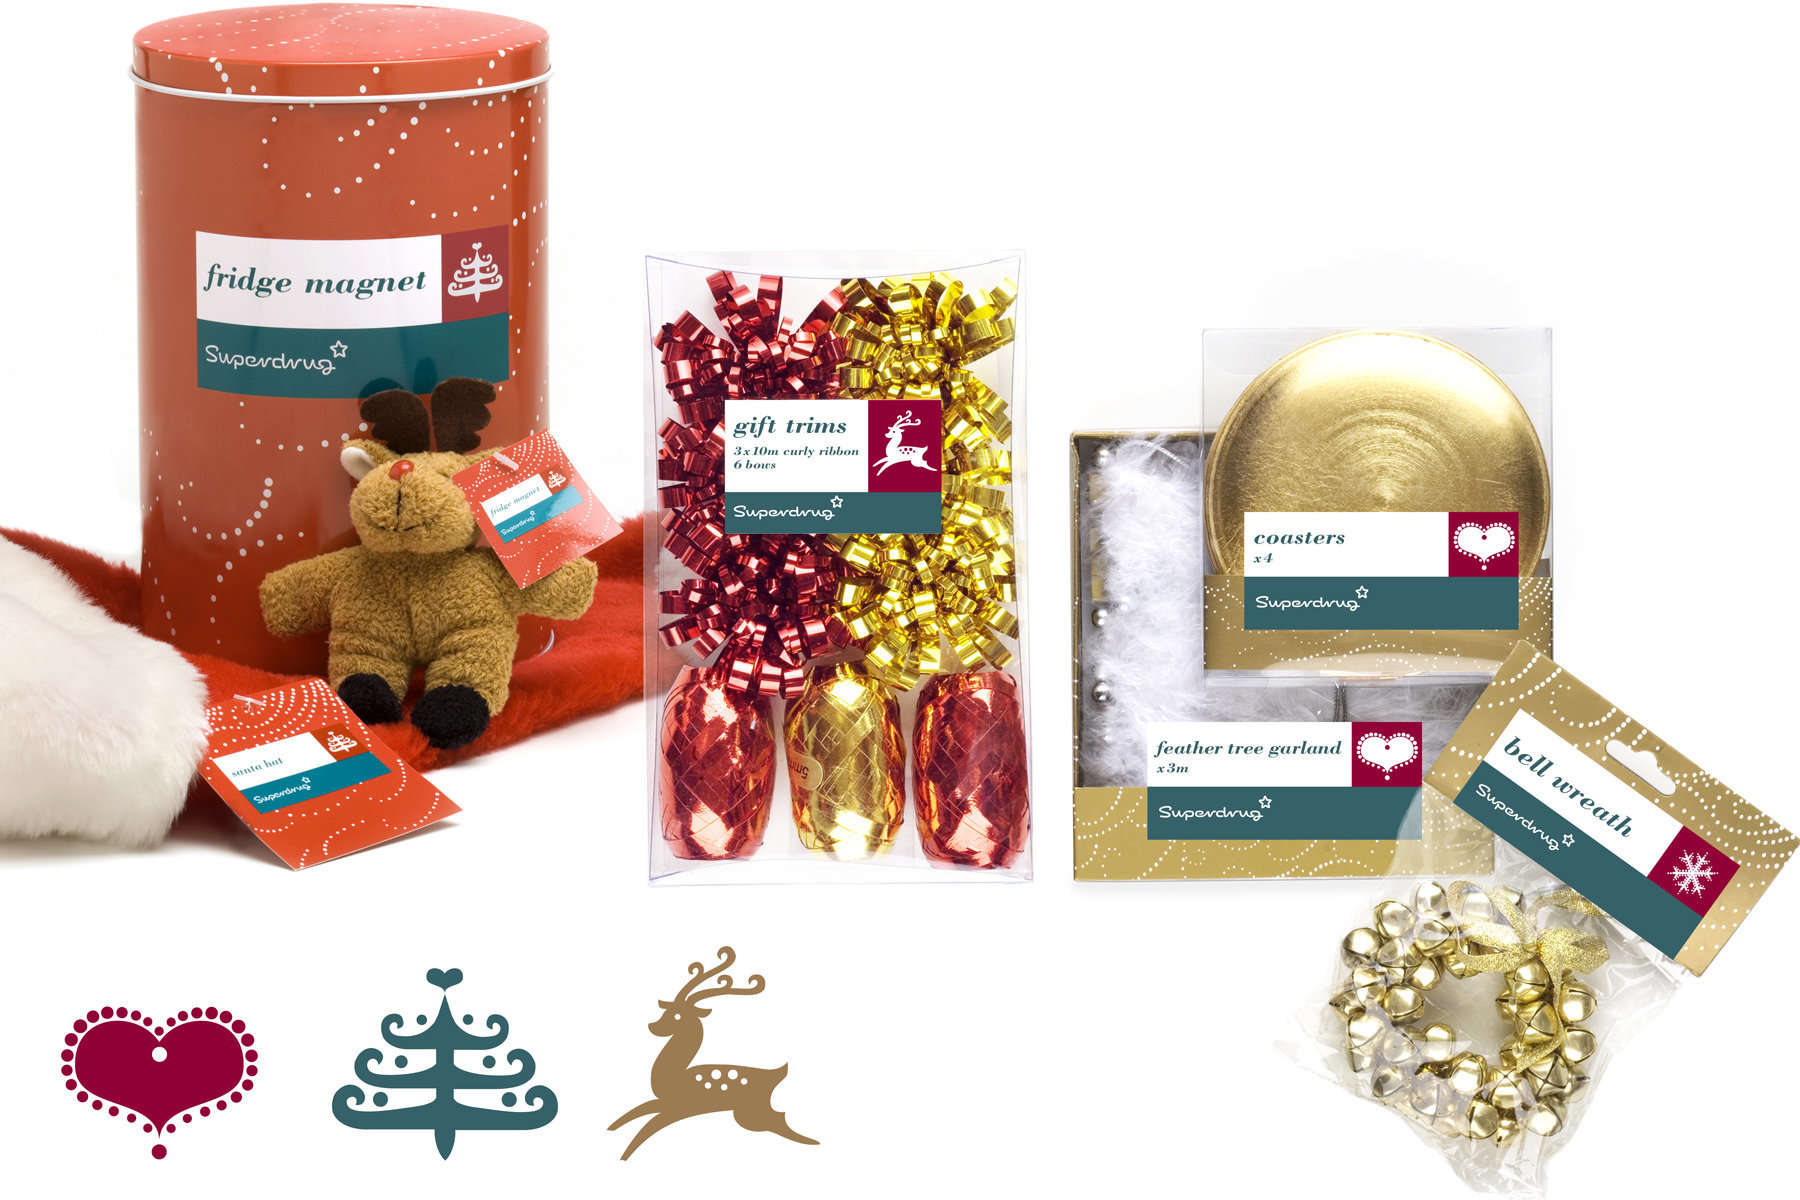 Packaging design, showing price differentiation, for a wide range of Christmas products 